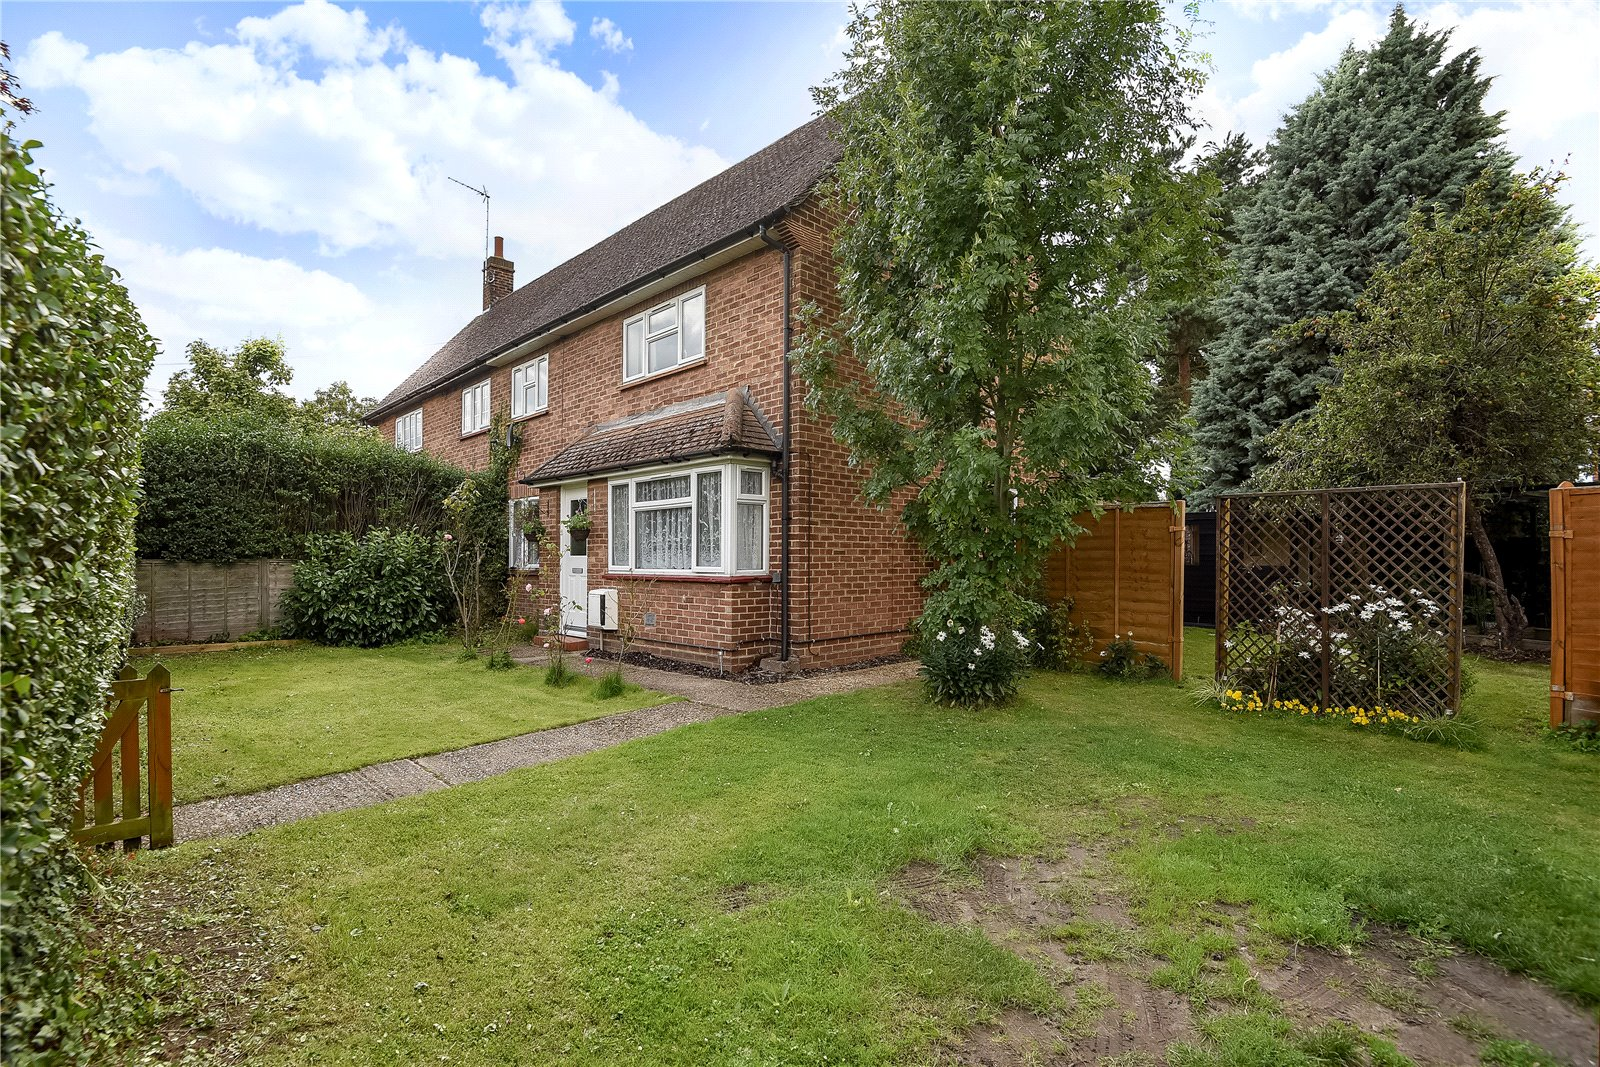 3 Bedrooms Semi Detached House for sale in Barrett Crescent, Wokingham, Berkshire, RG40